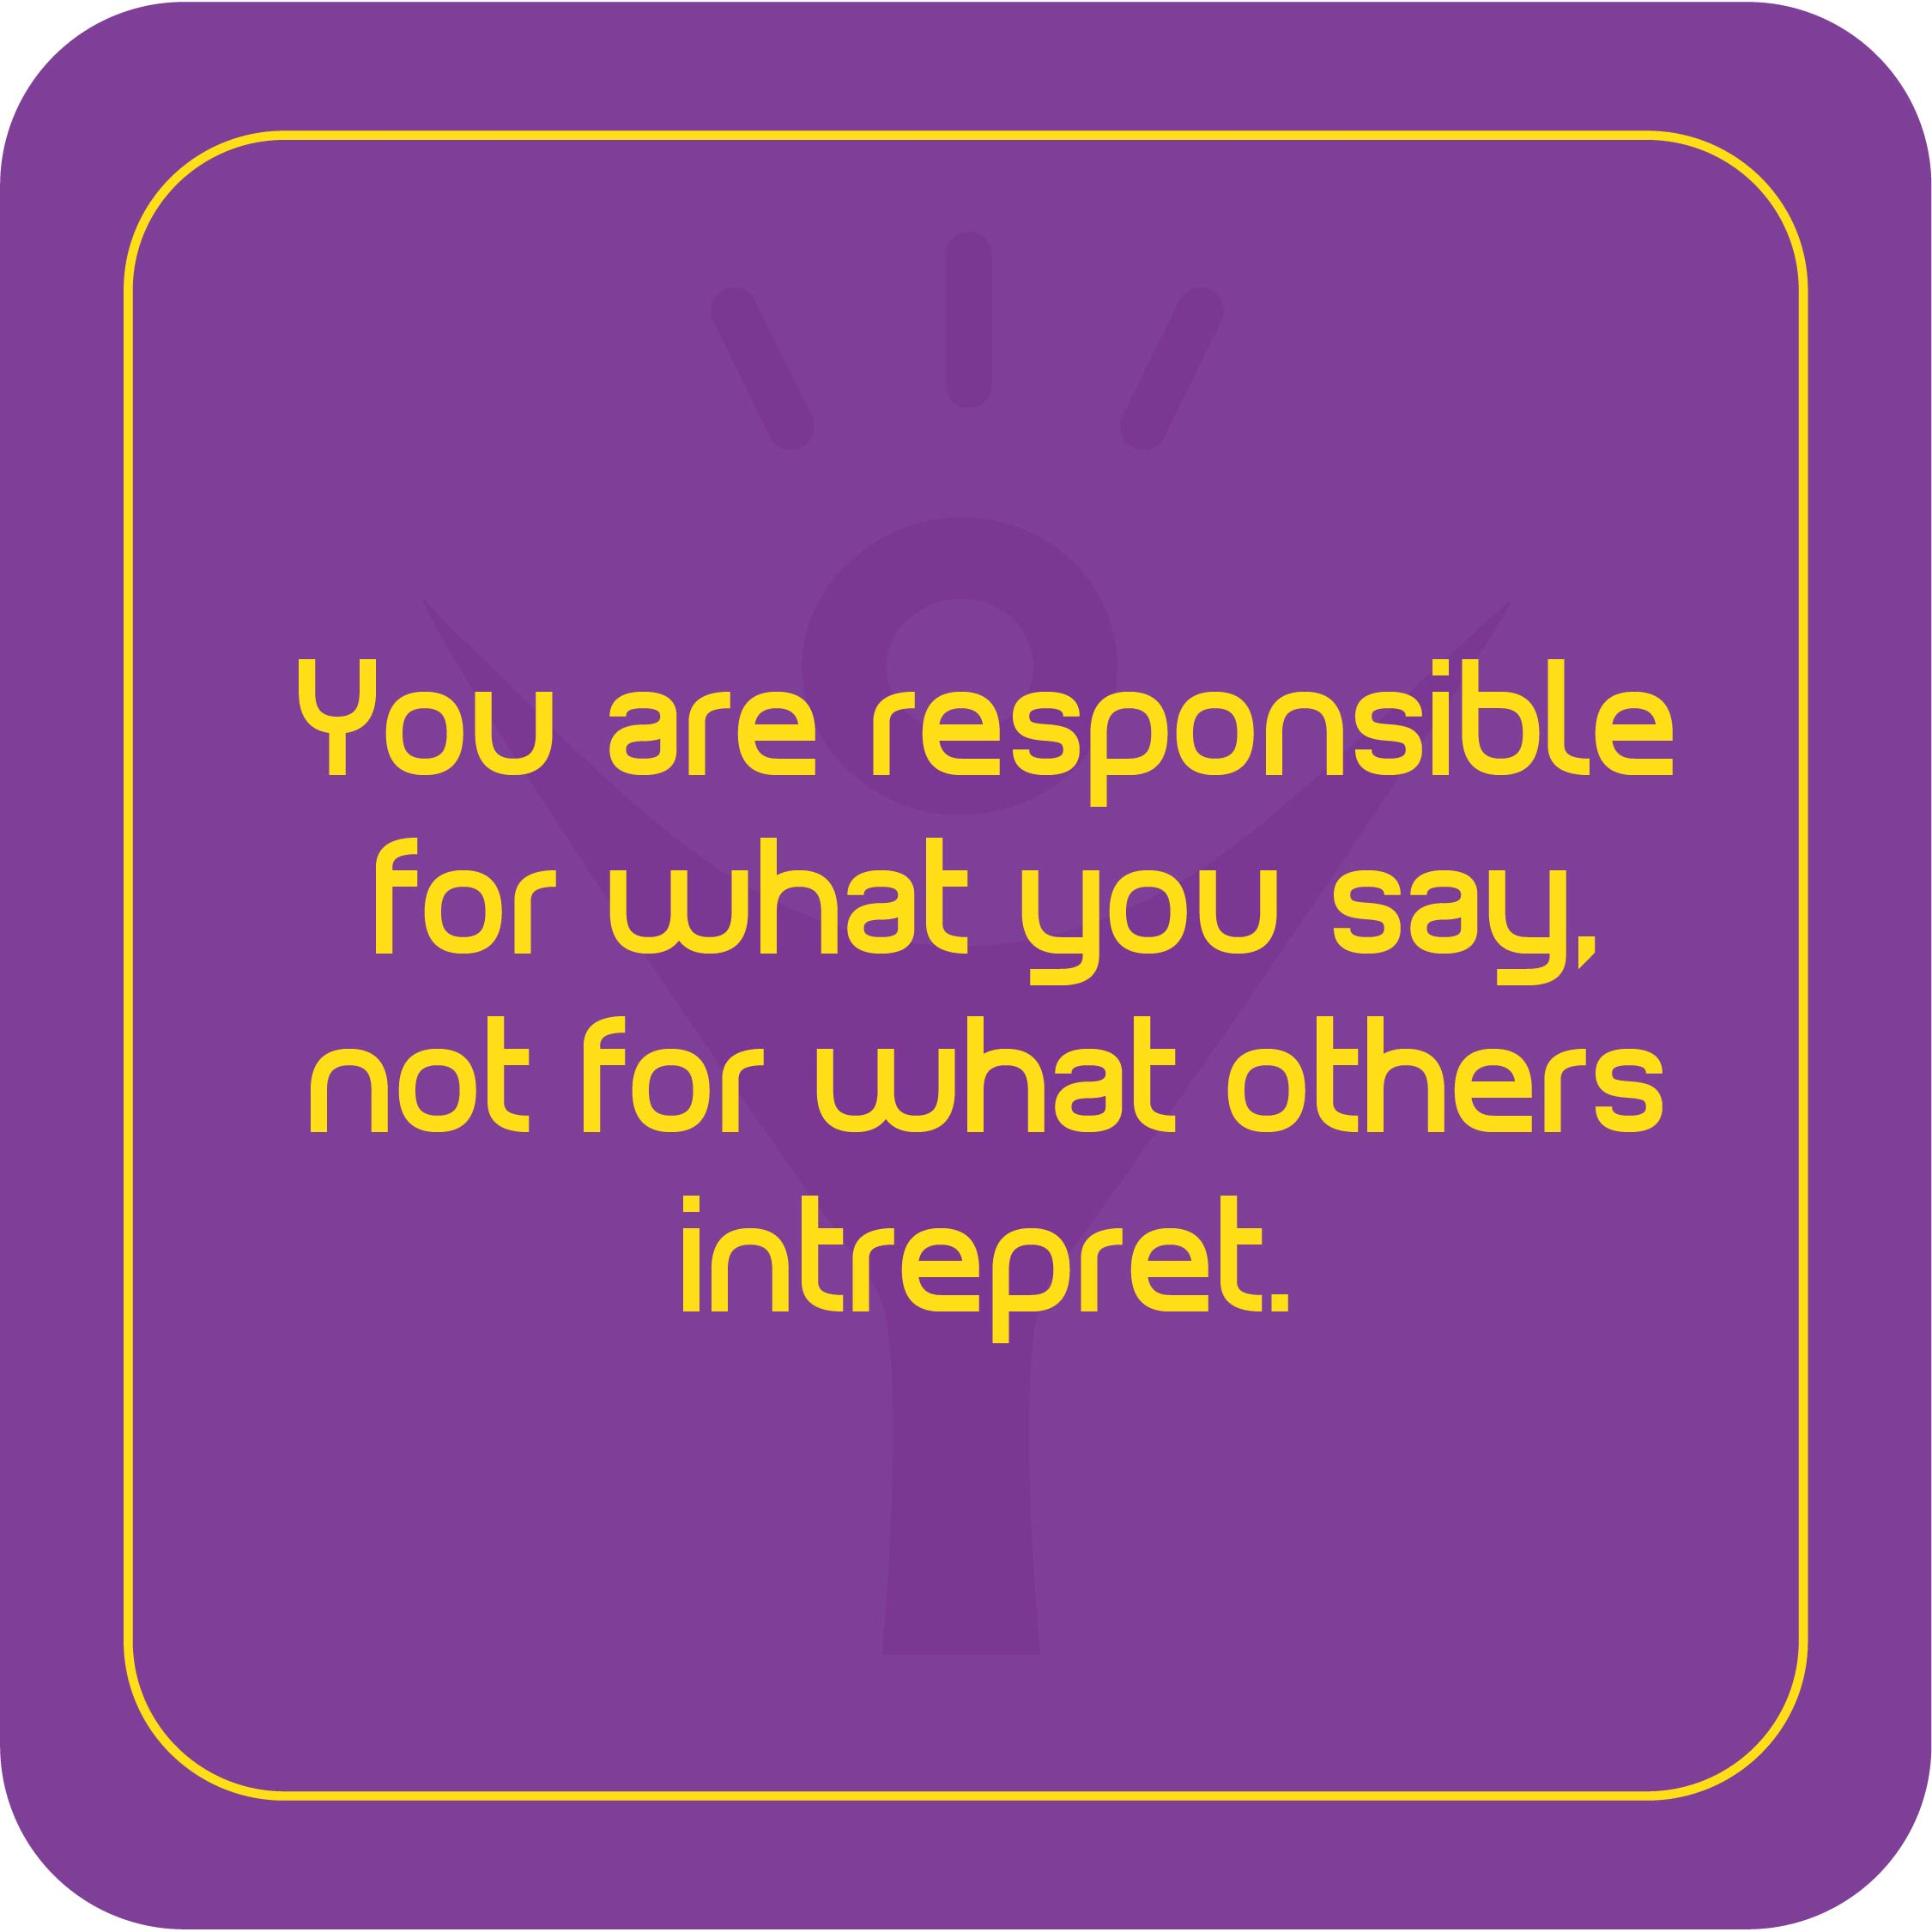 H'ou are responsible for what gou sag, not for what others intrepretm L—J https://inspirational.ly